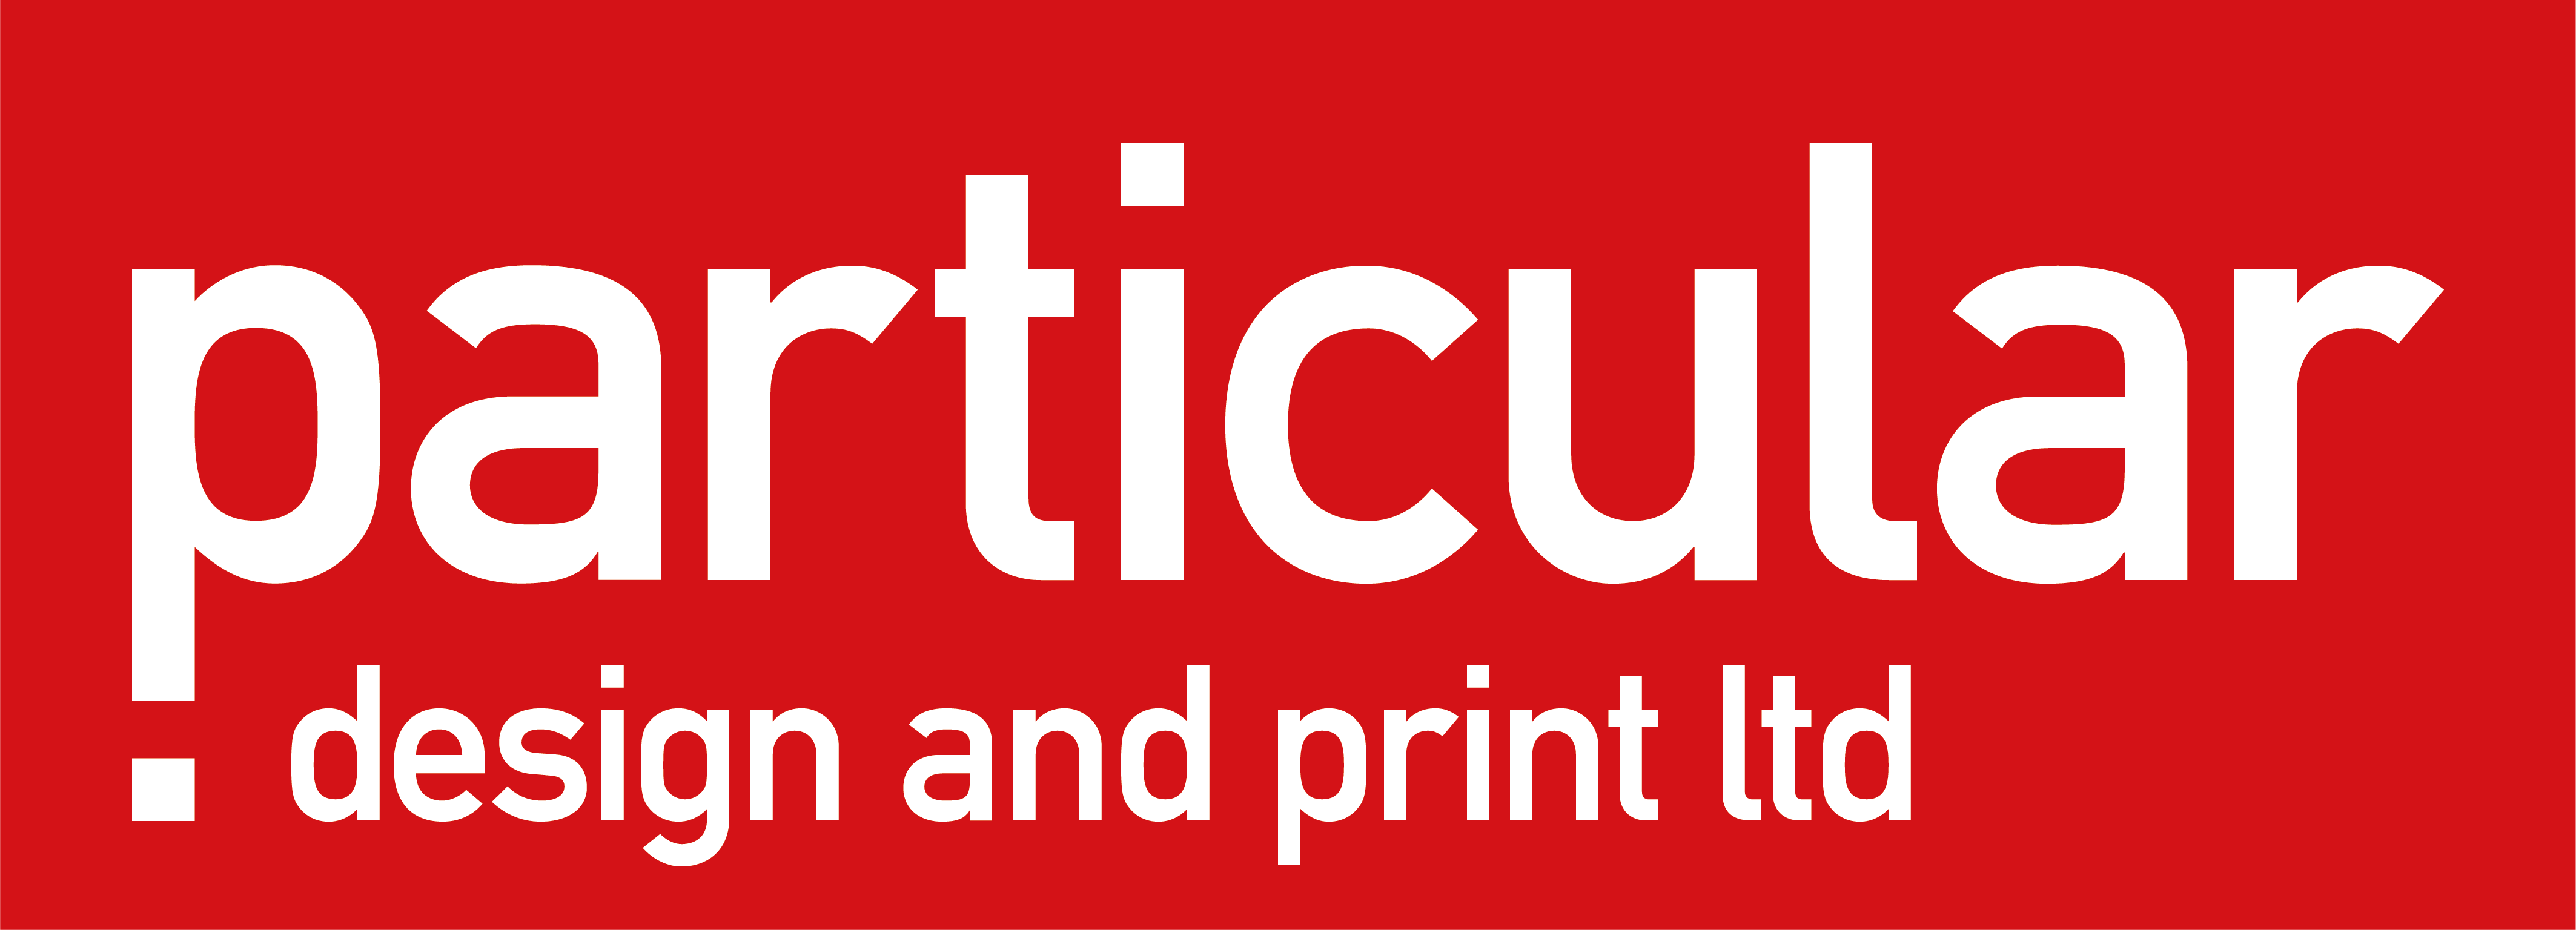 Particular Design and Print Ltd, Silsden West Yorkshire